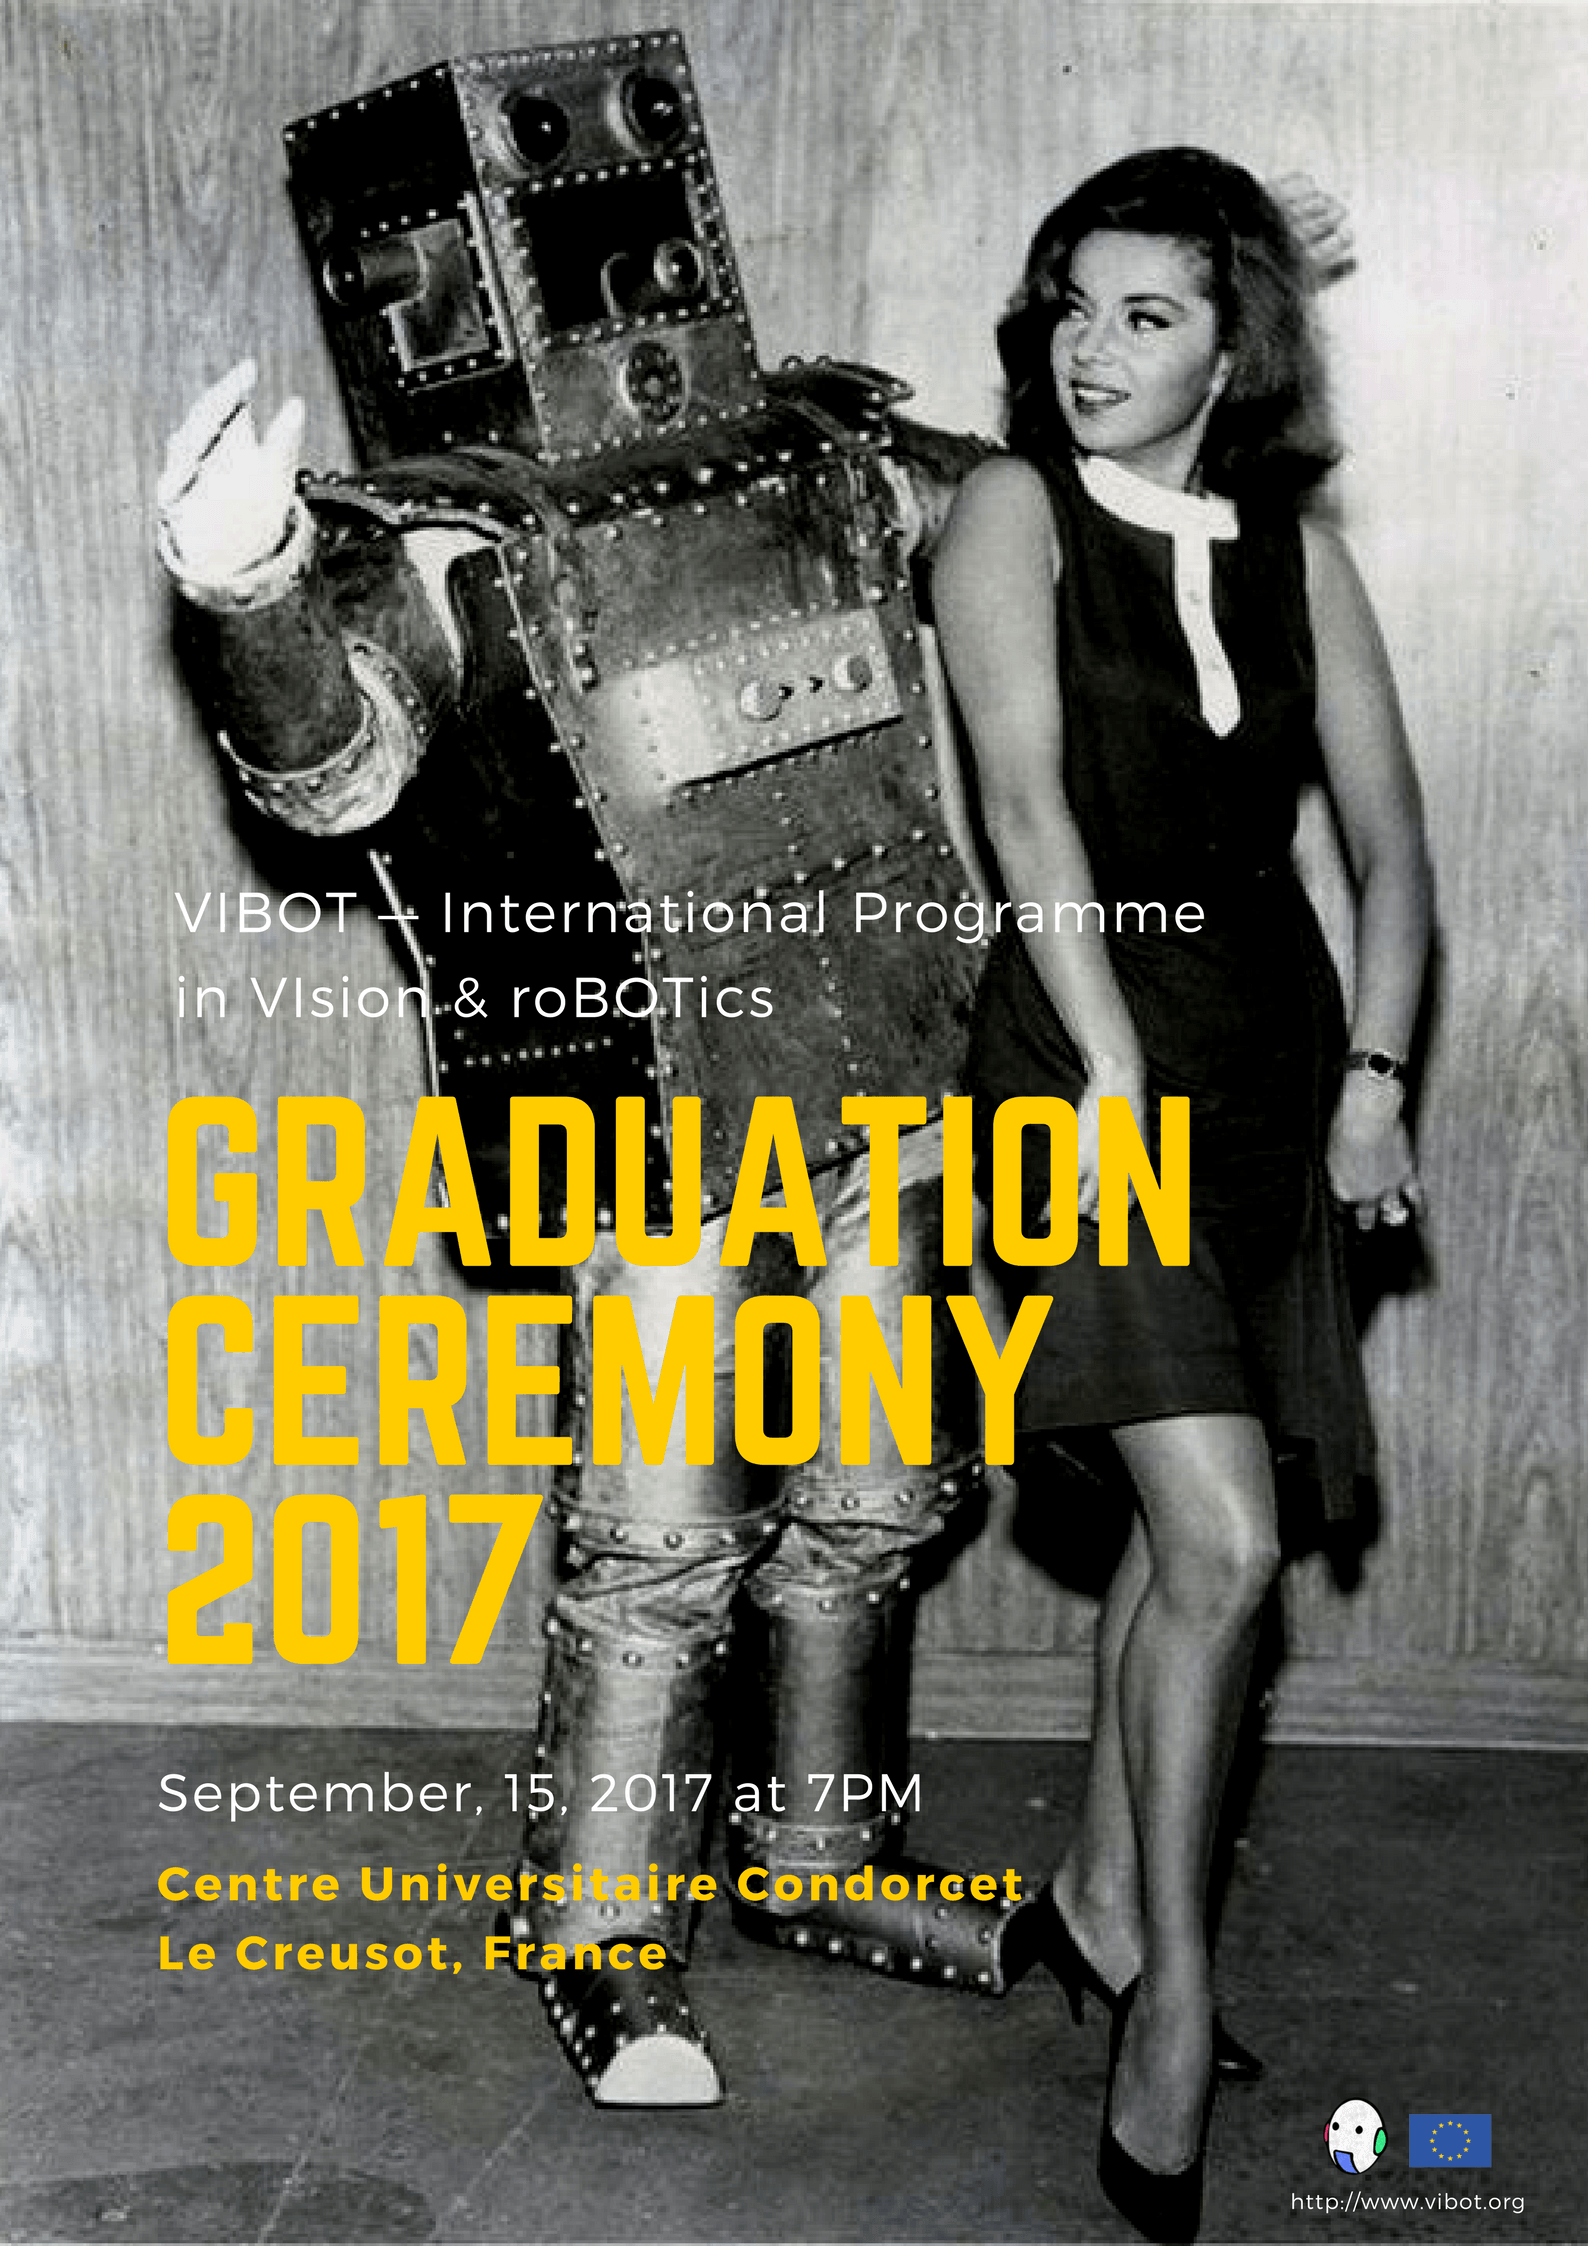 Graduation ceremony 2017 5